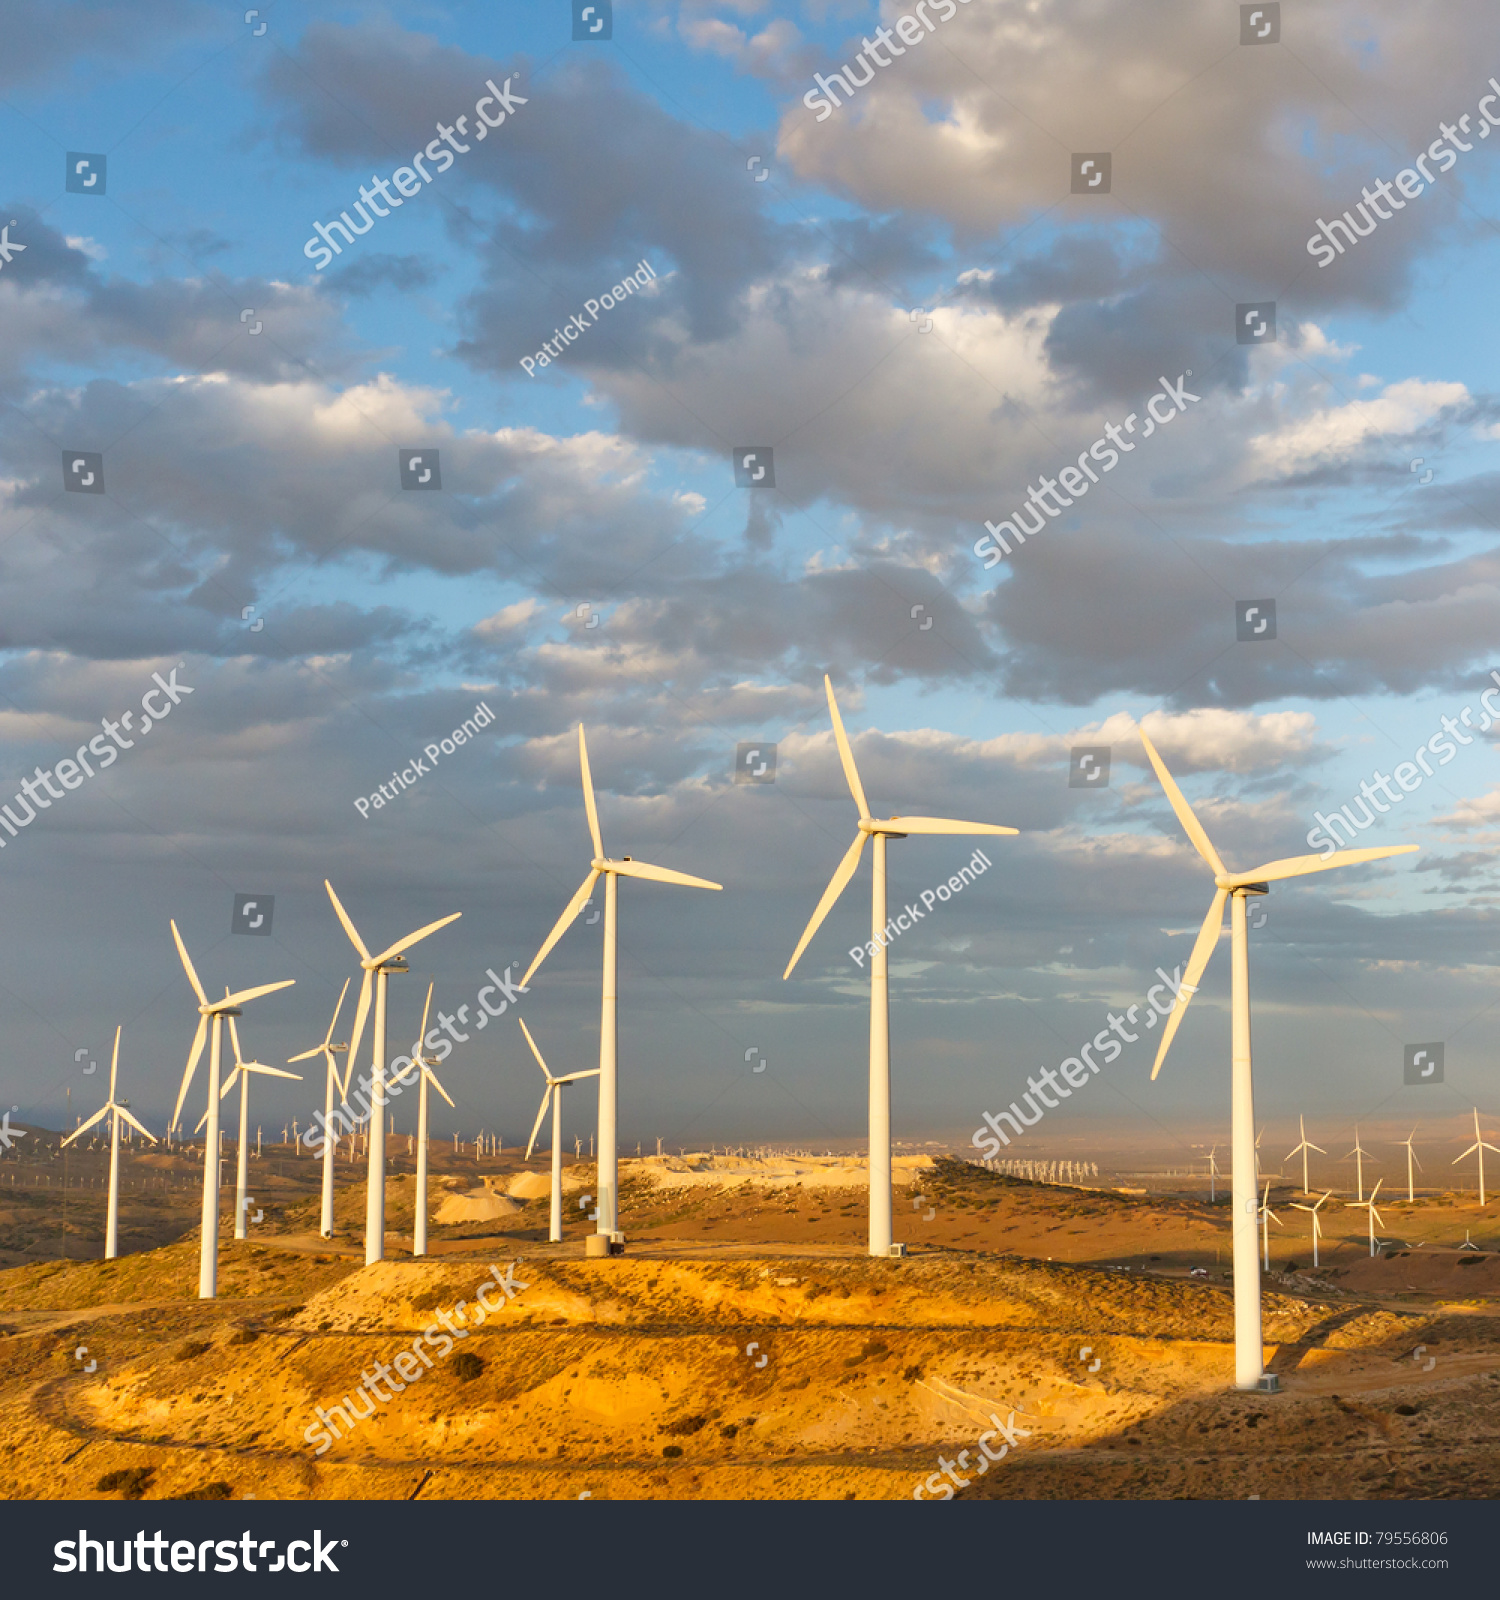 Wind Farm, California, generating clean renewable electrical energy